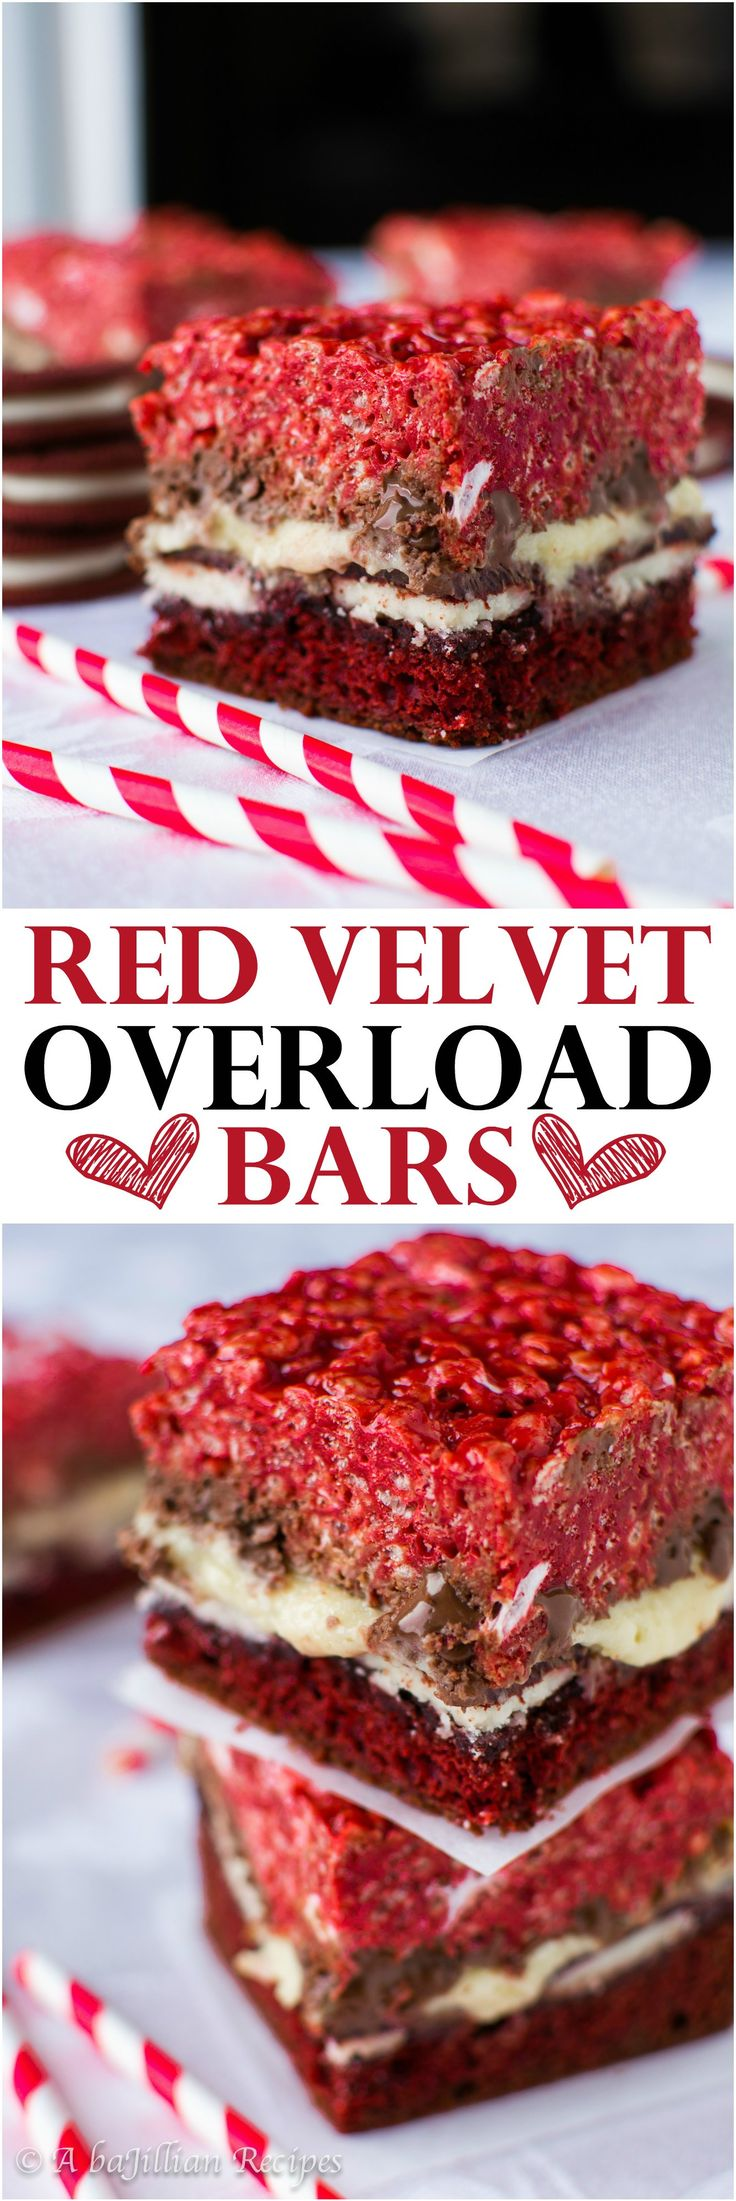 Triple the red velvet which means triple the temptation in these Red Velvet Overload Bars!